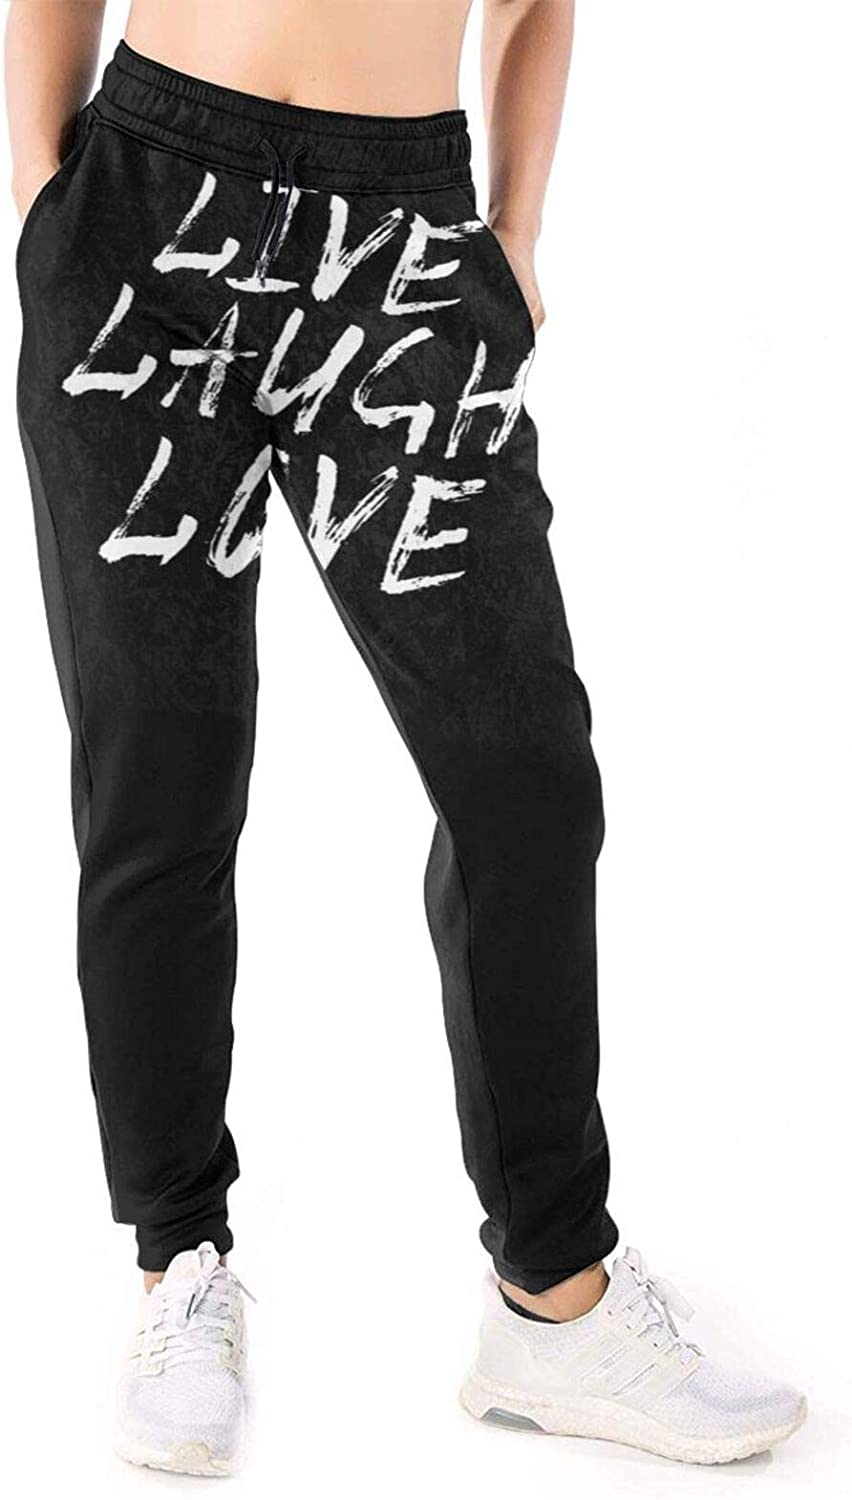 Women Joggers Pants Laugh Live Love White Athletic Sweatpants with Pockets Casual Trousers Baggy